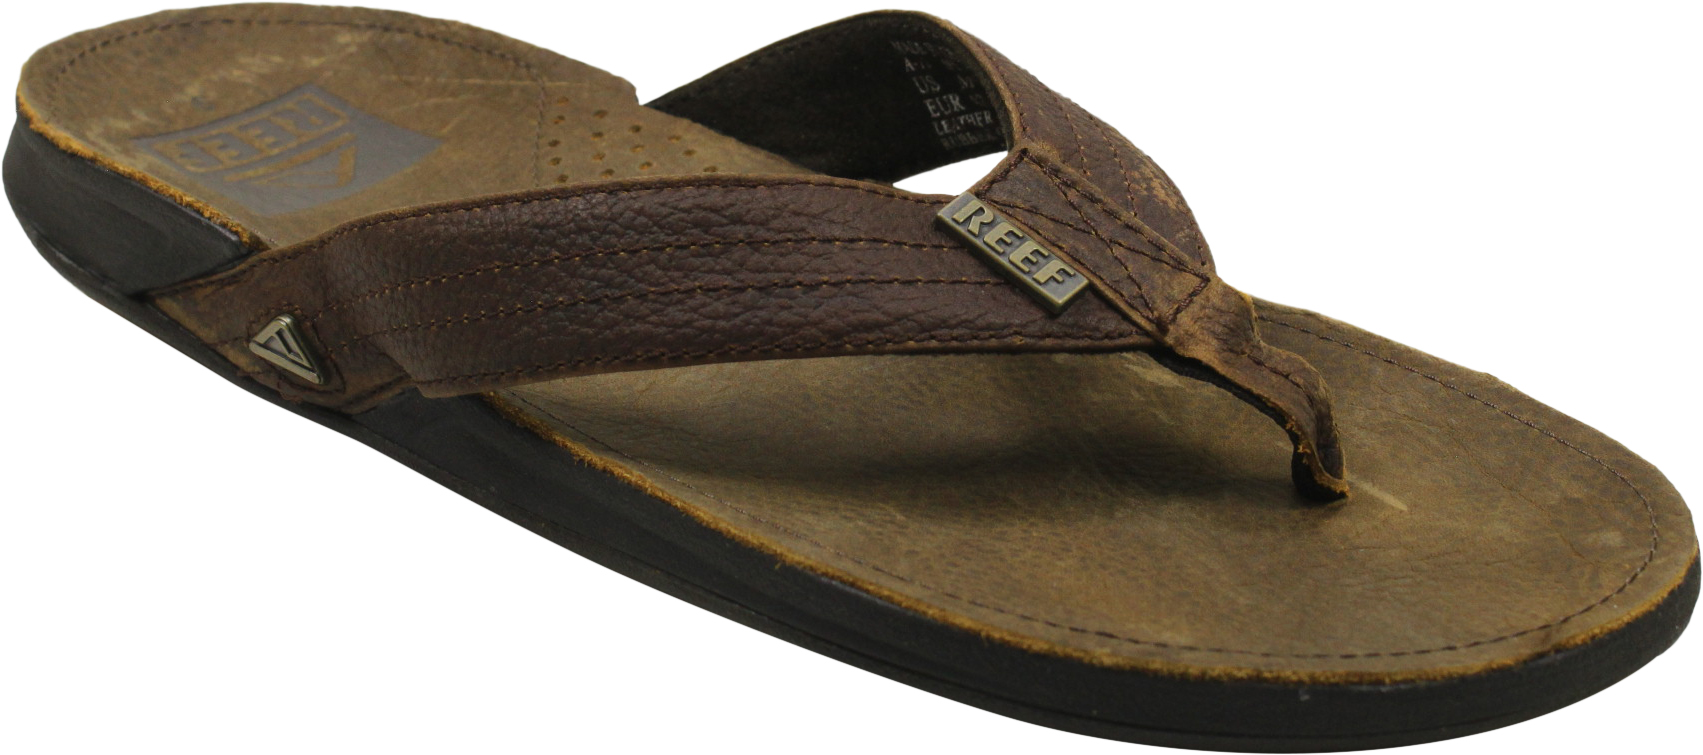 604f2d55af9b Footwear · Mens · Sandals   FlipFlops · J-Bay III - Camel